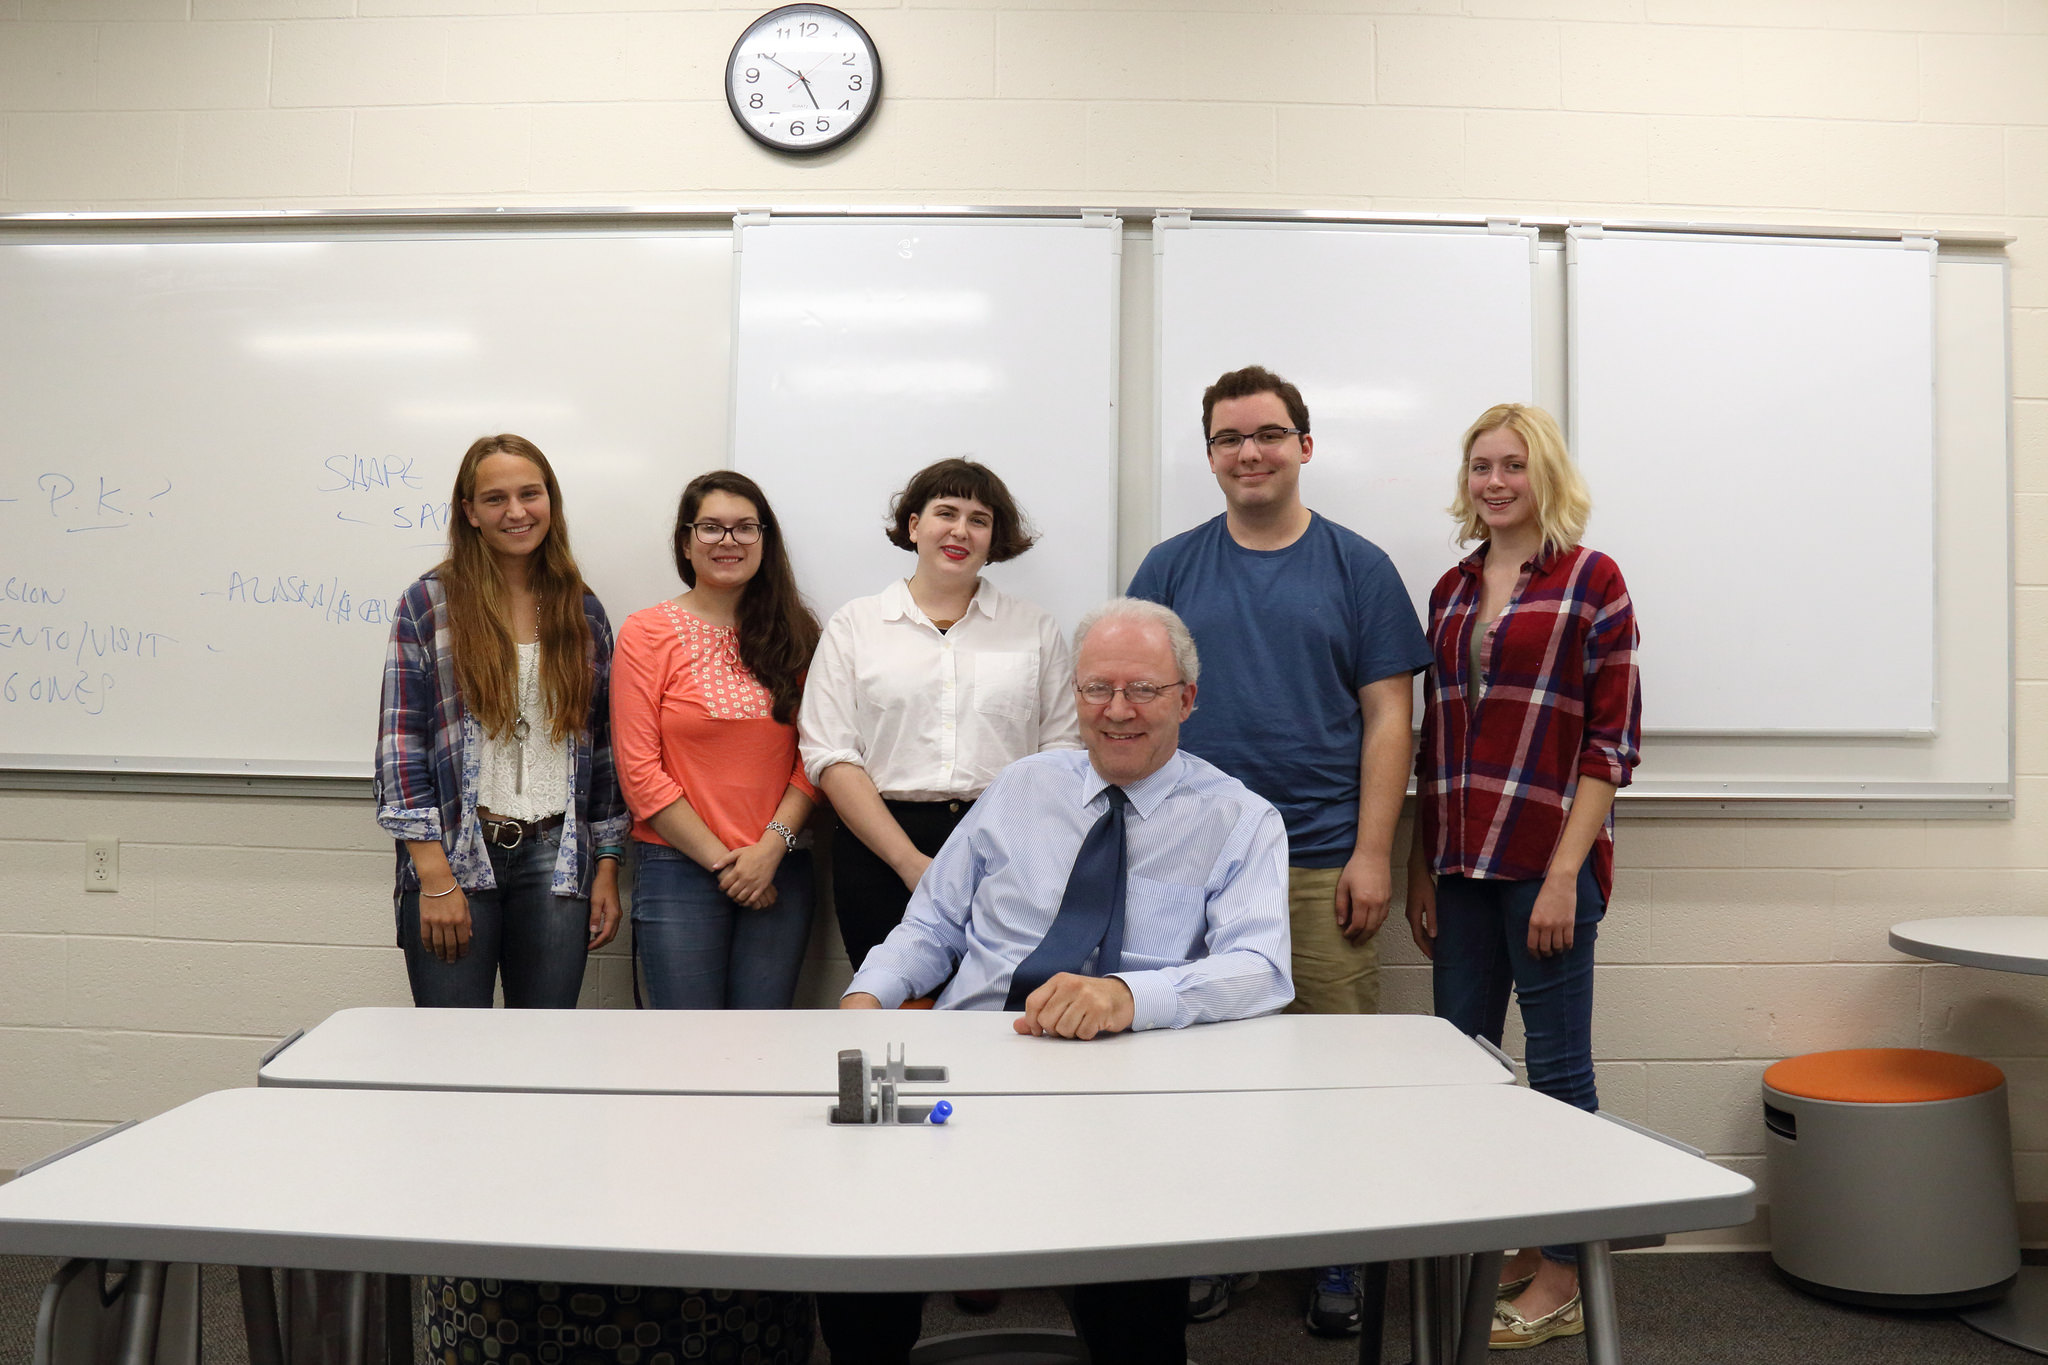 Global Scholars meeting Ambassador David Donoghue